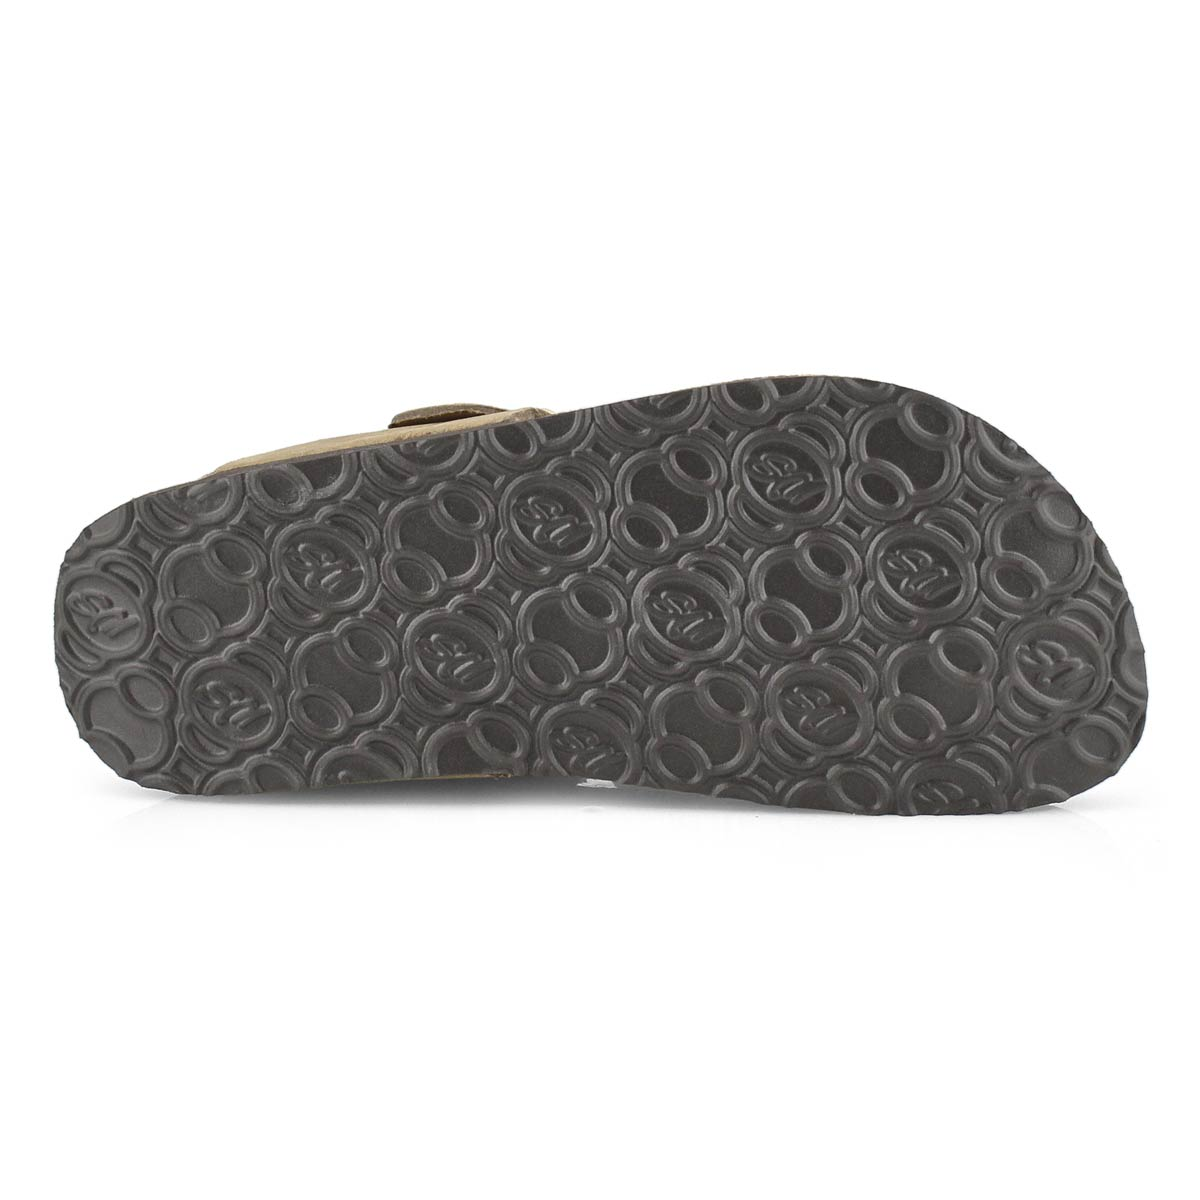 Lds Angy5 stone memory foam thng sndl